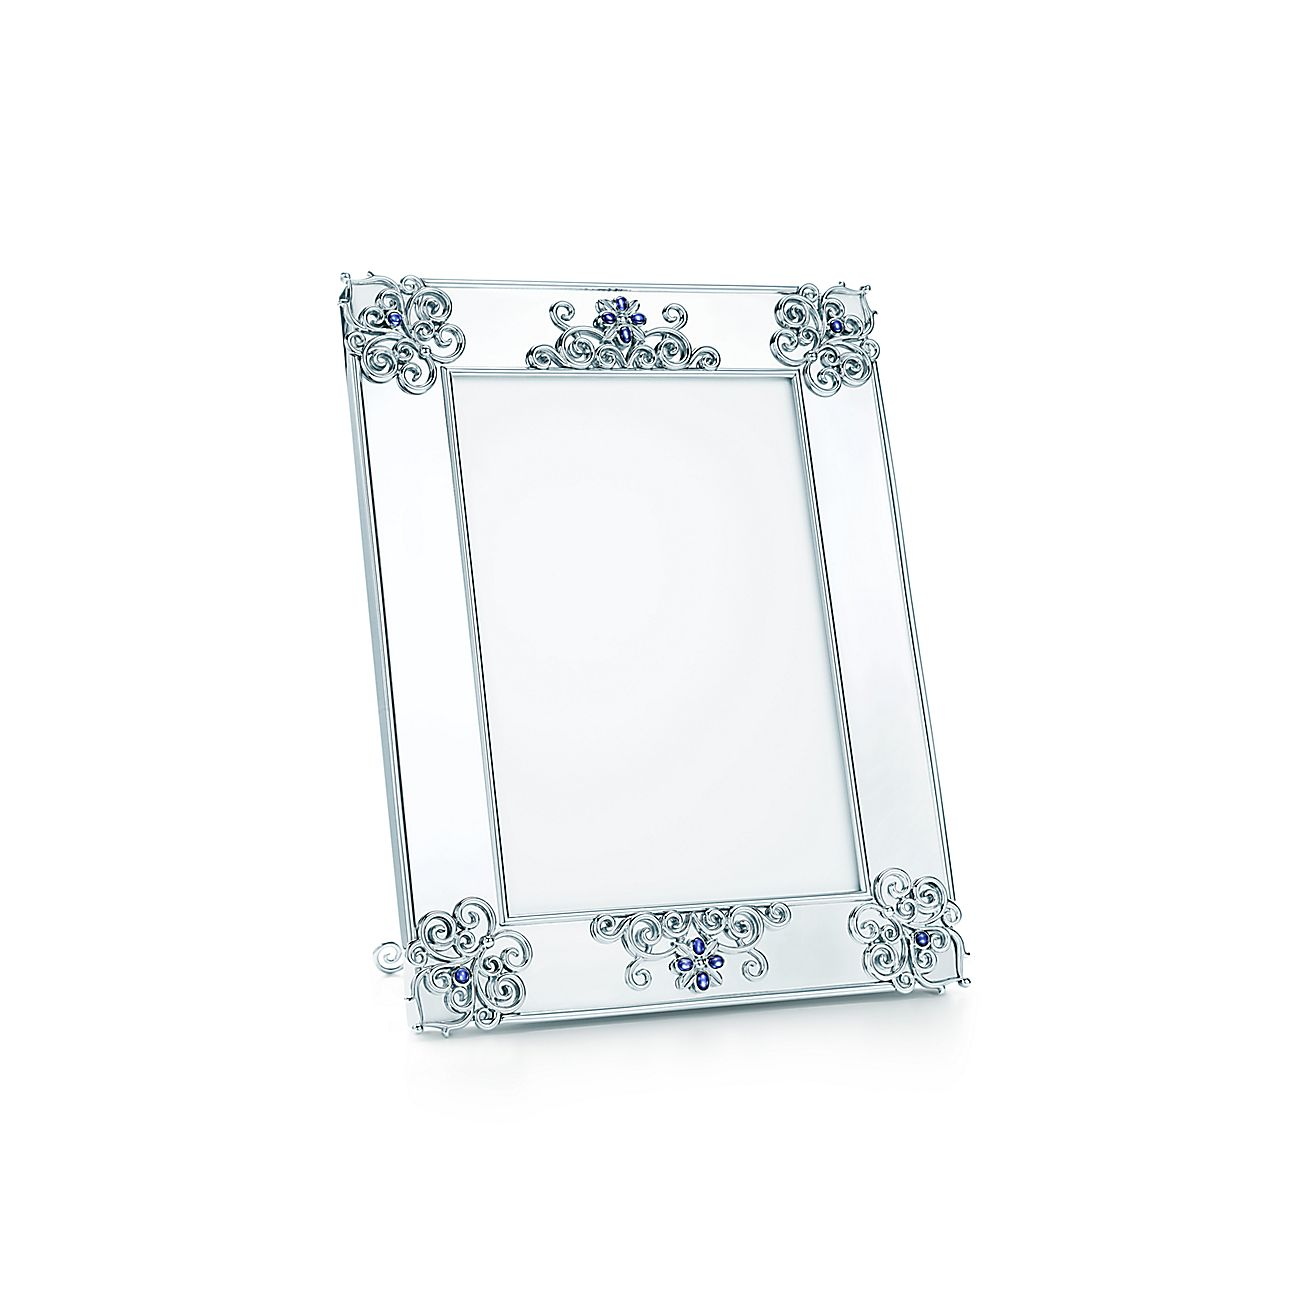 Tiffany Enchant® scroll frame in sterling silver with